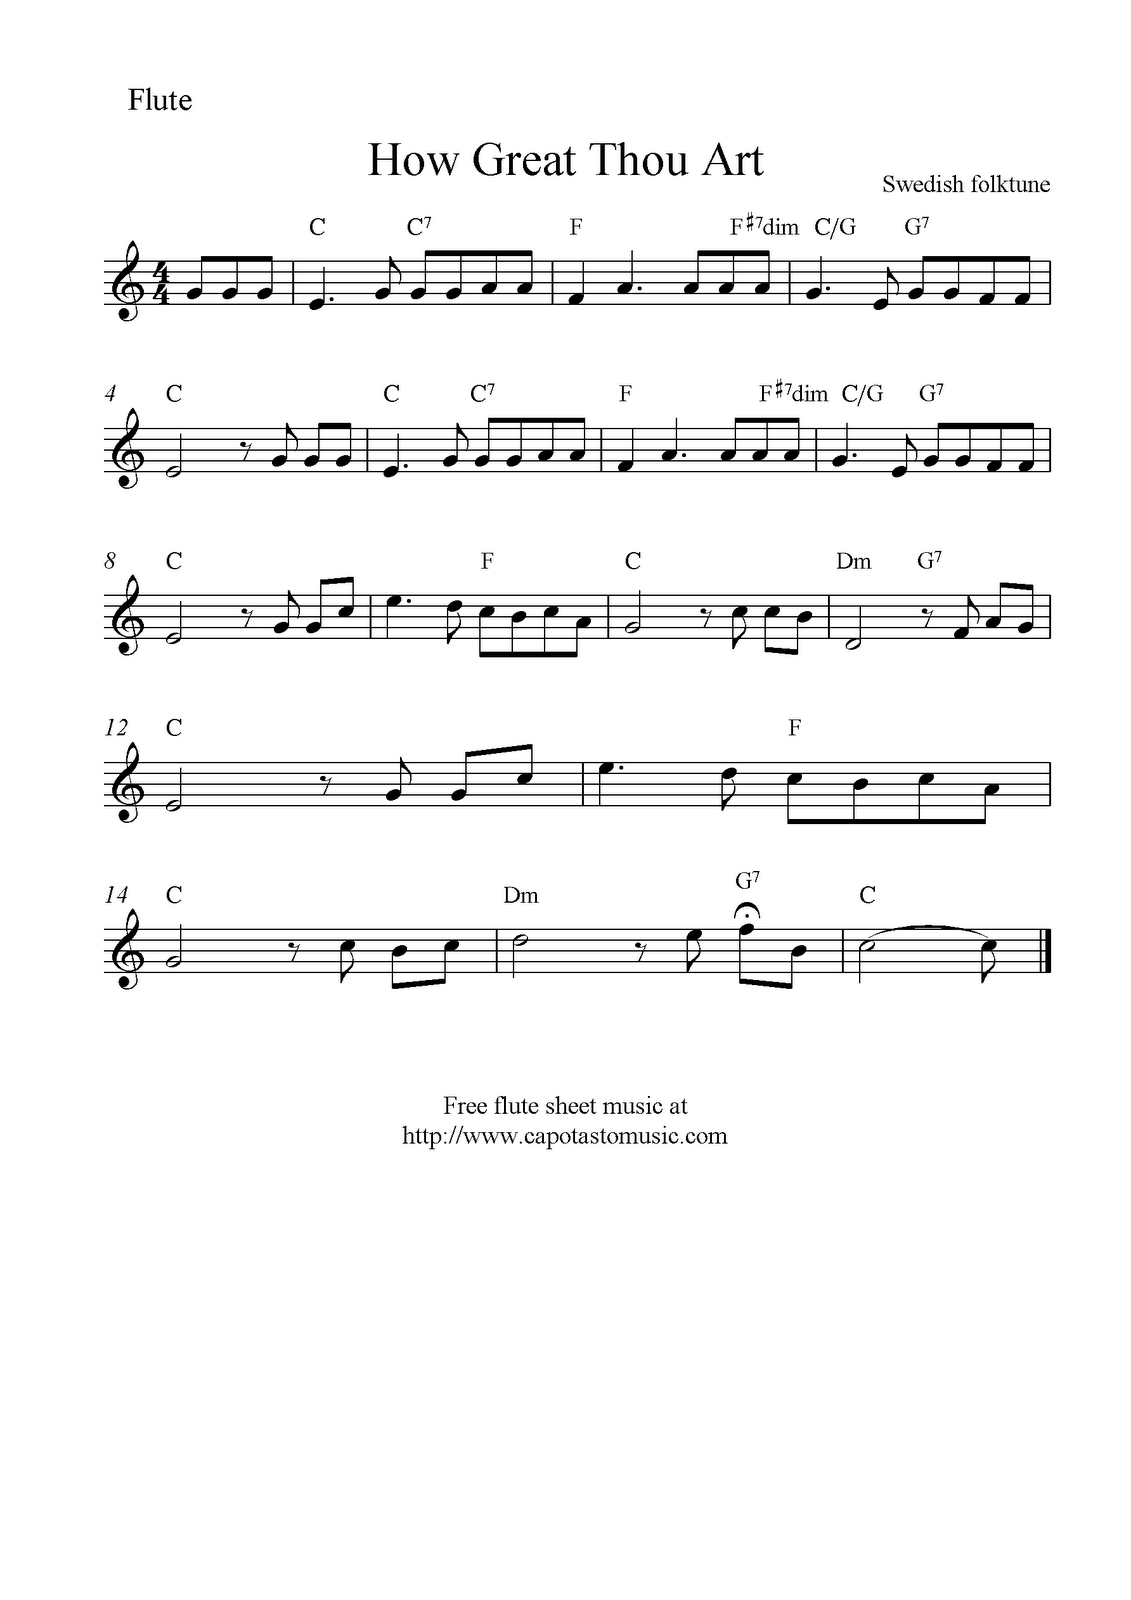 How great thou art free christian flute sheet music notes